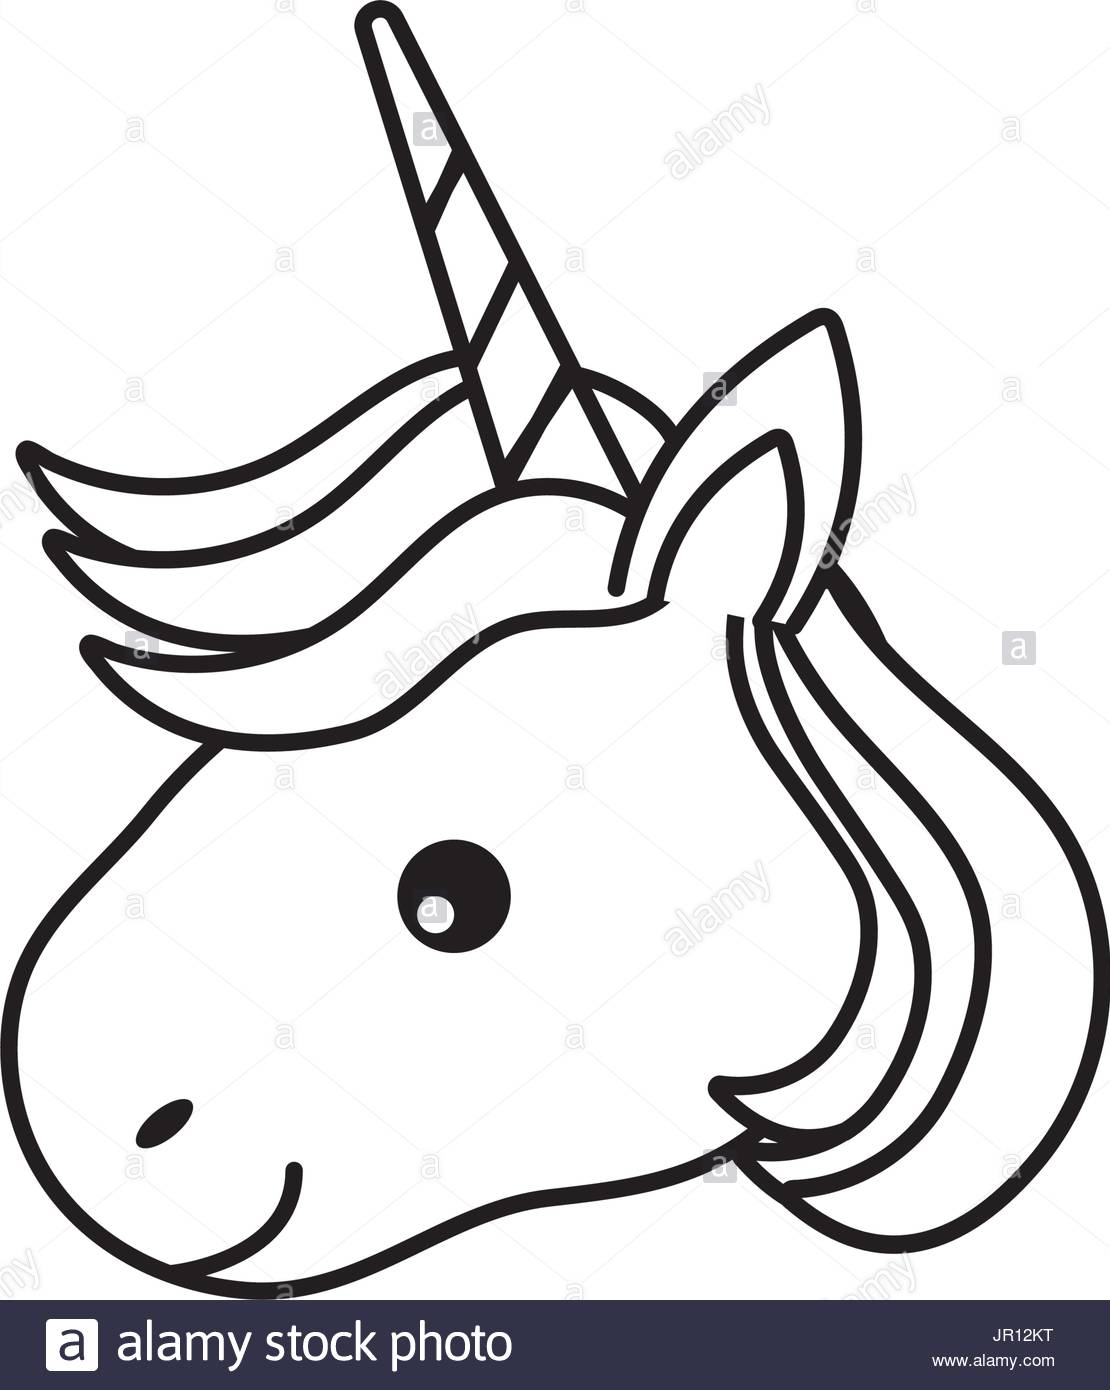 1110x1390 Line Cute Unicorn Head With Horn And Hairstyle Stock Vector Art